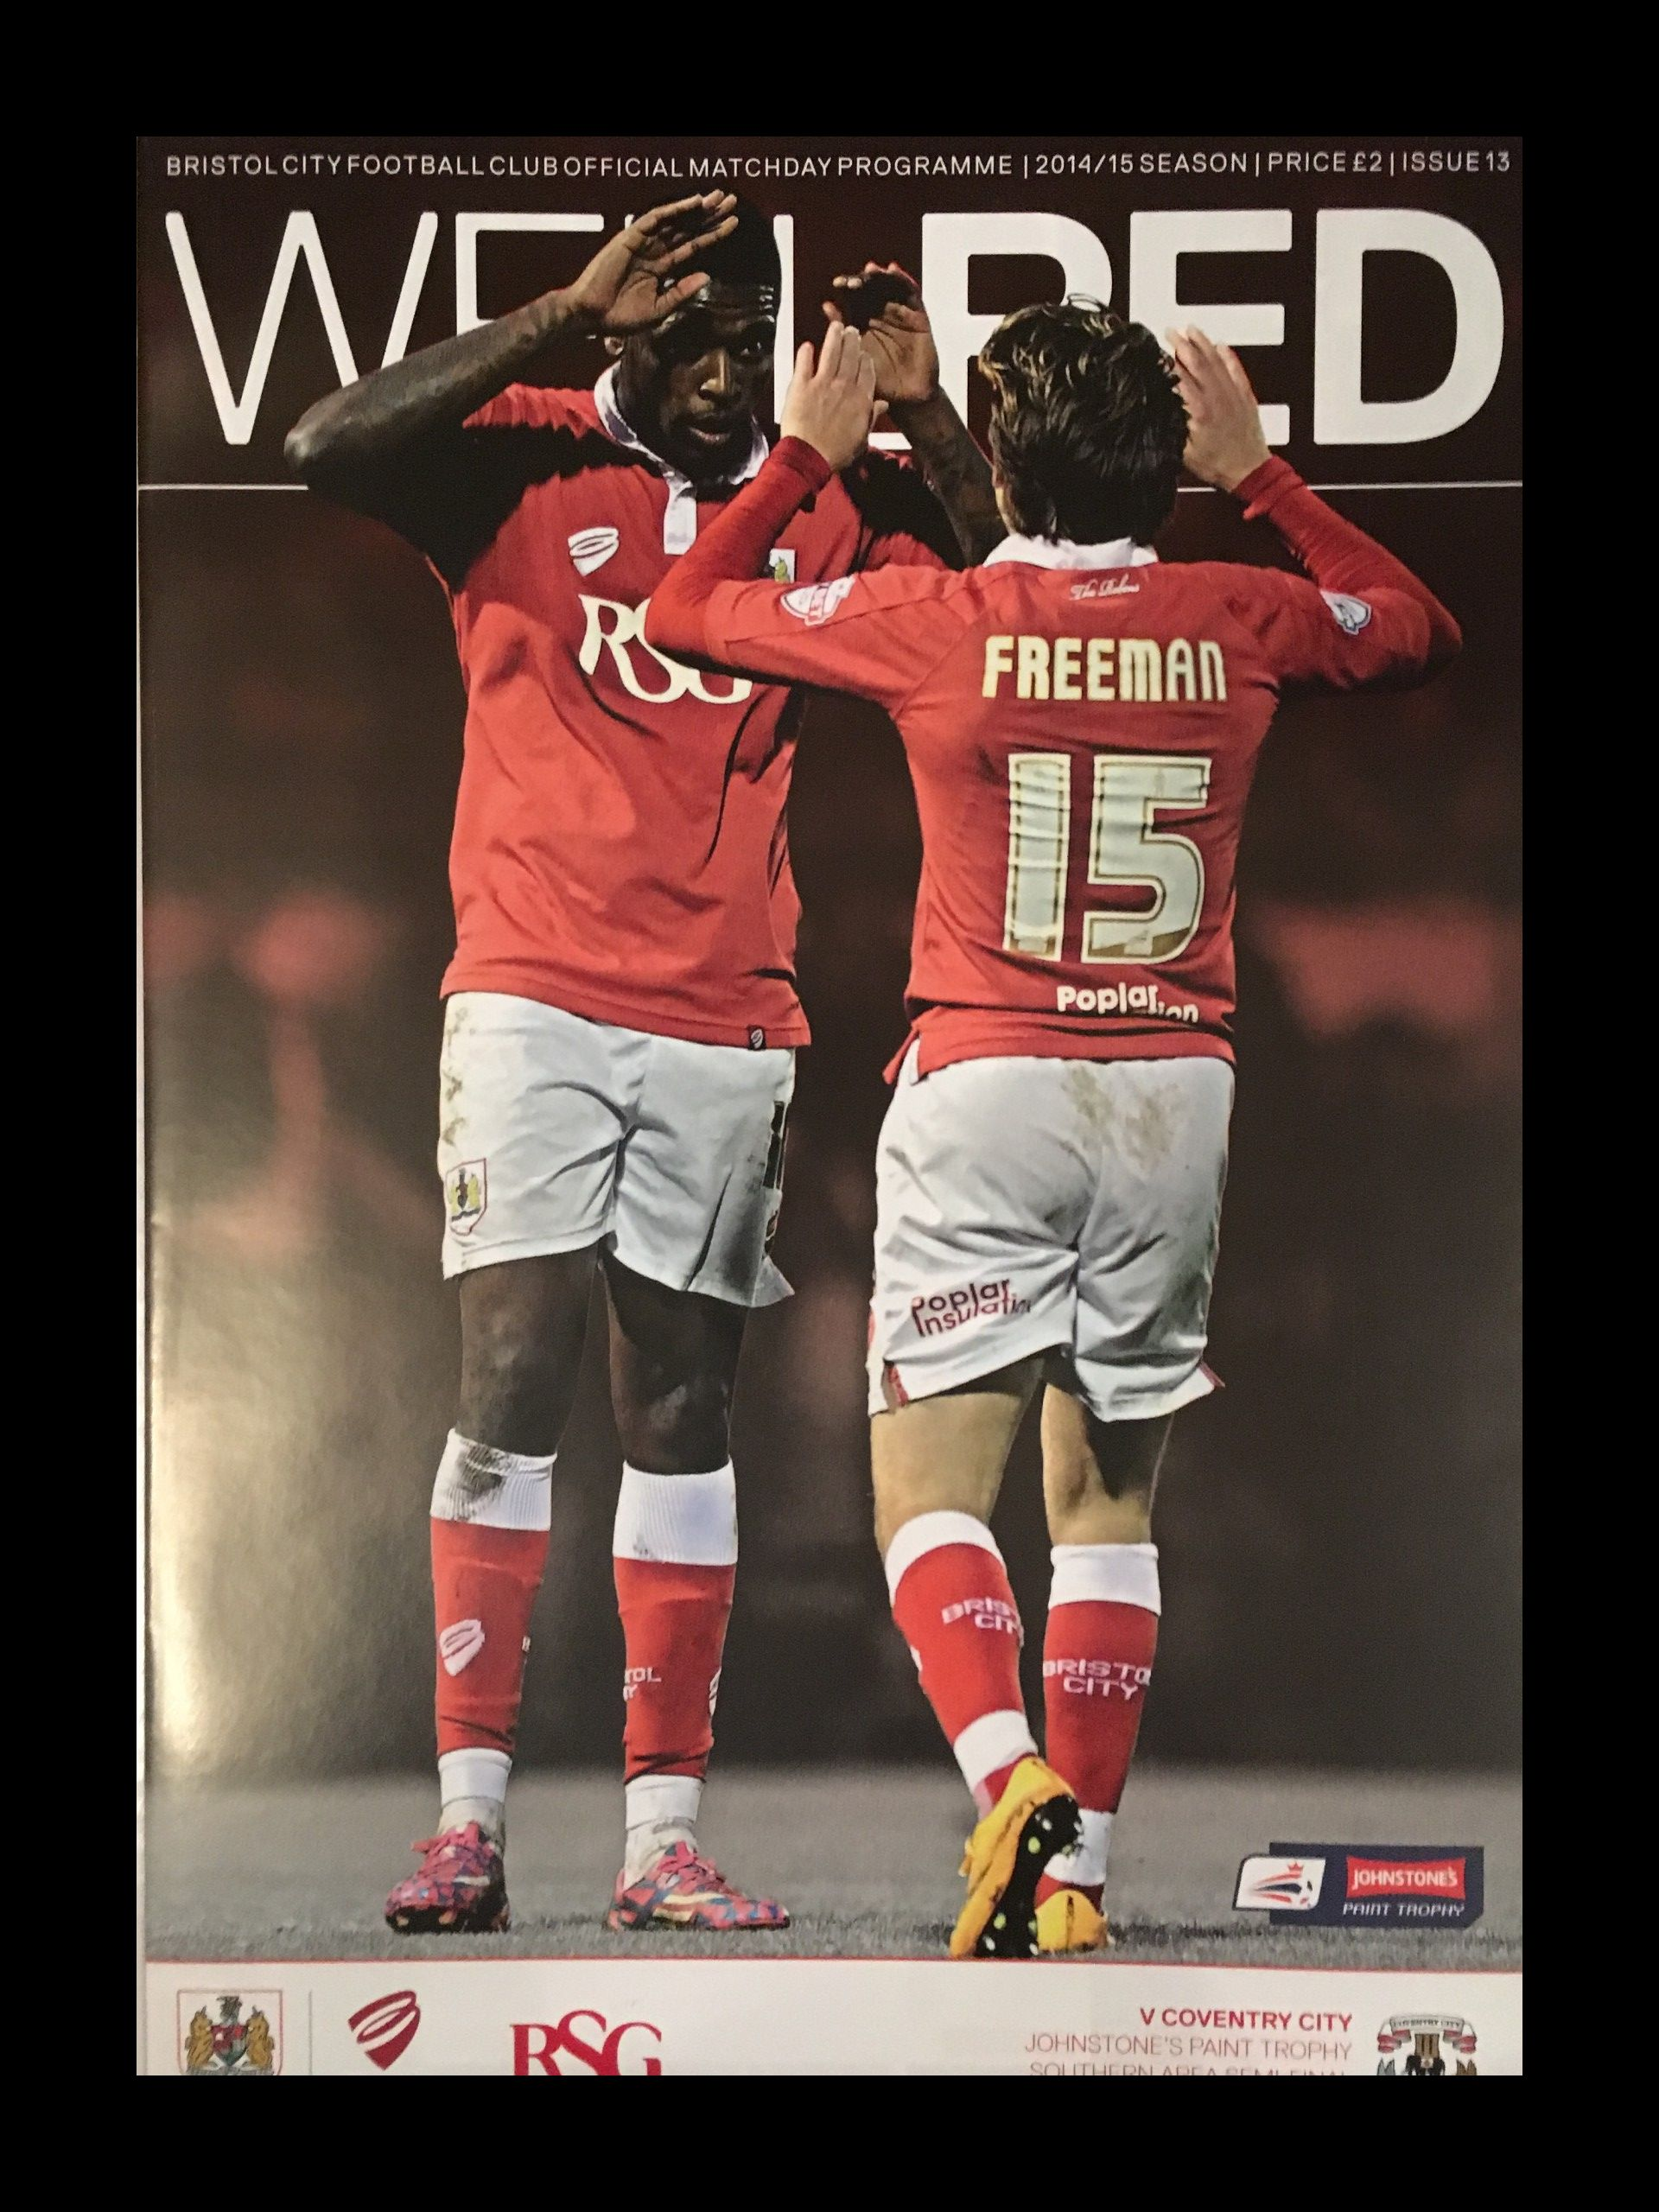 Bristol City v Coventry City 10-12-2014 Programme